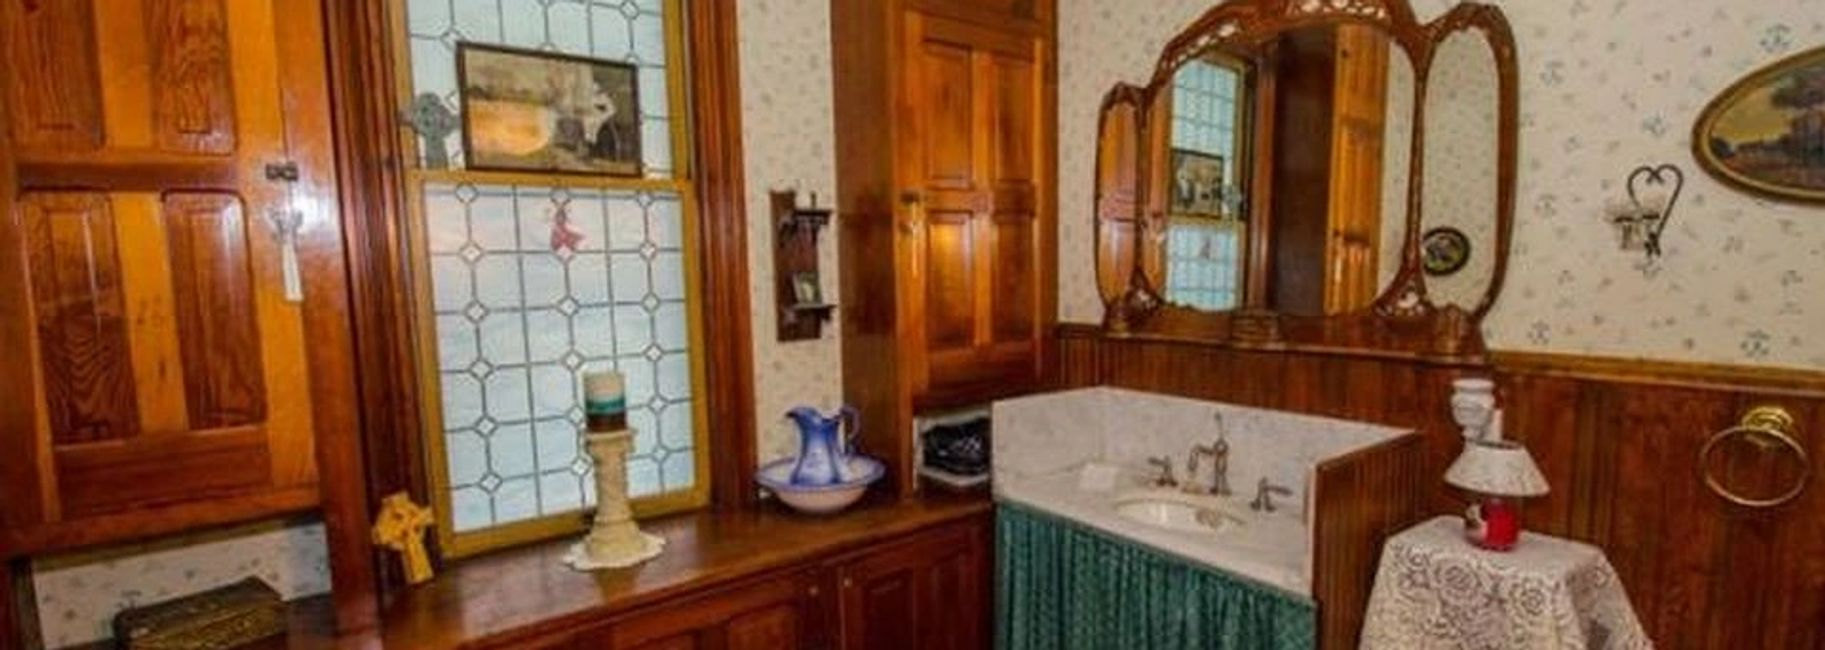 Wooden cabinets surrounding an old marble sink in a half bathroom.